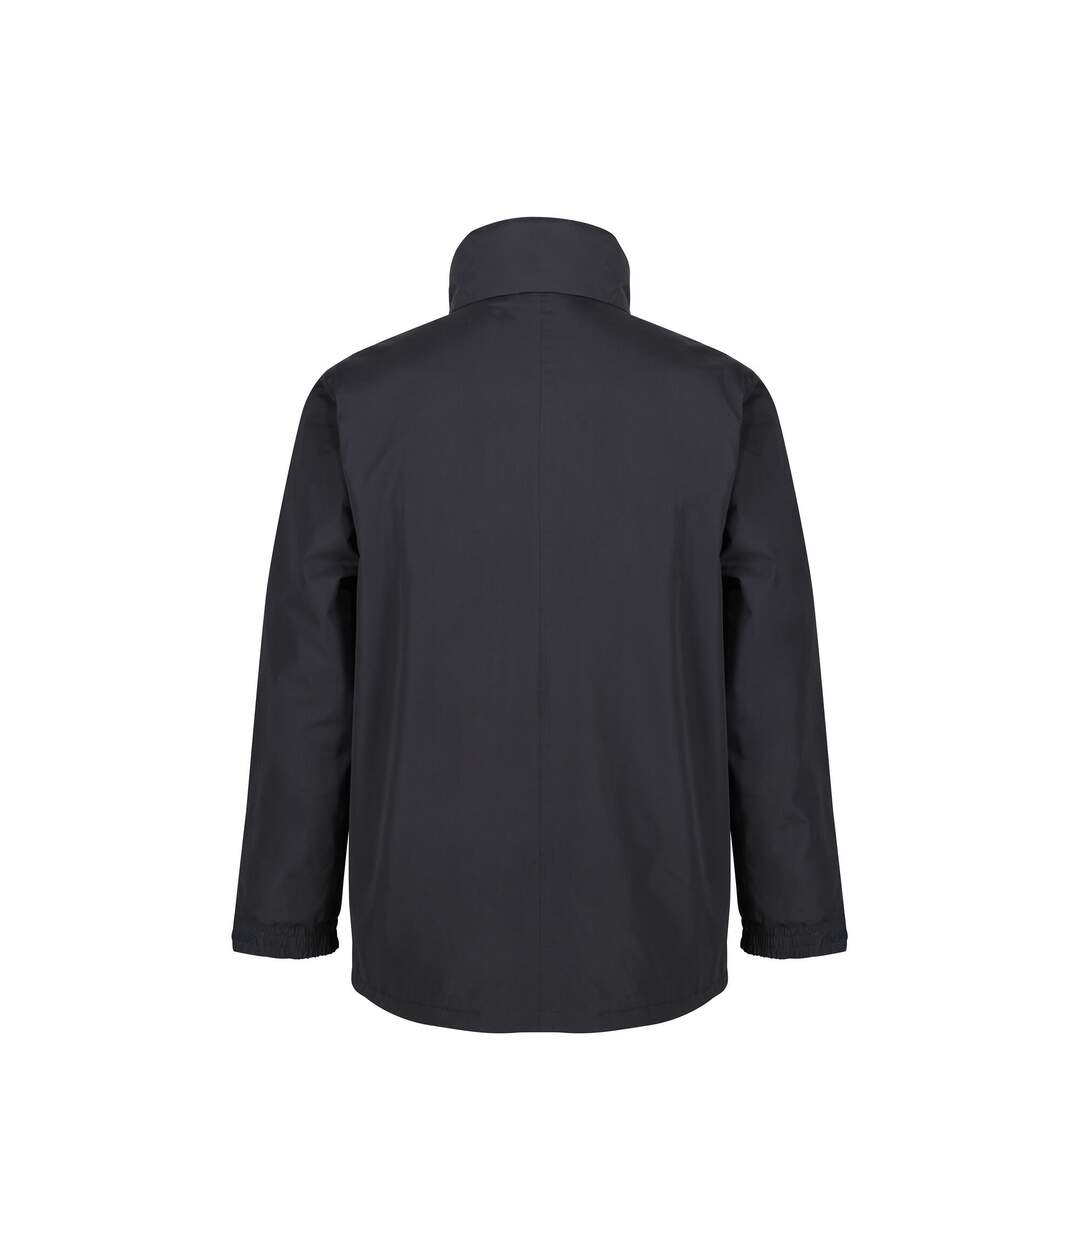 Regatta Mens Beauford Jacket (Charcoal) - UTRG3115